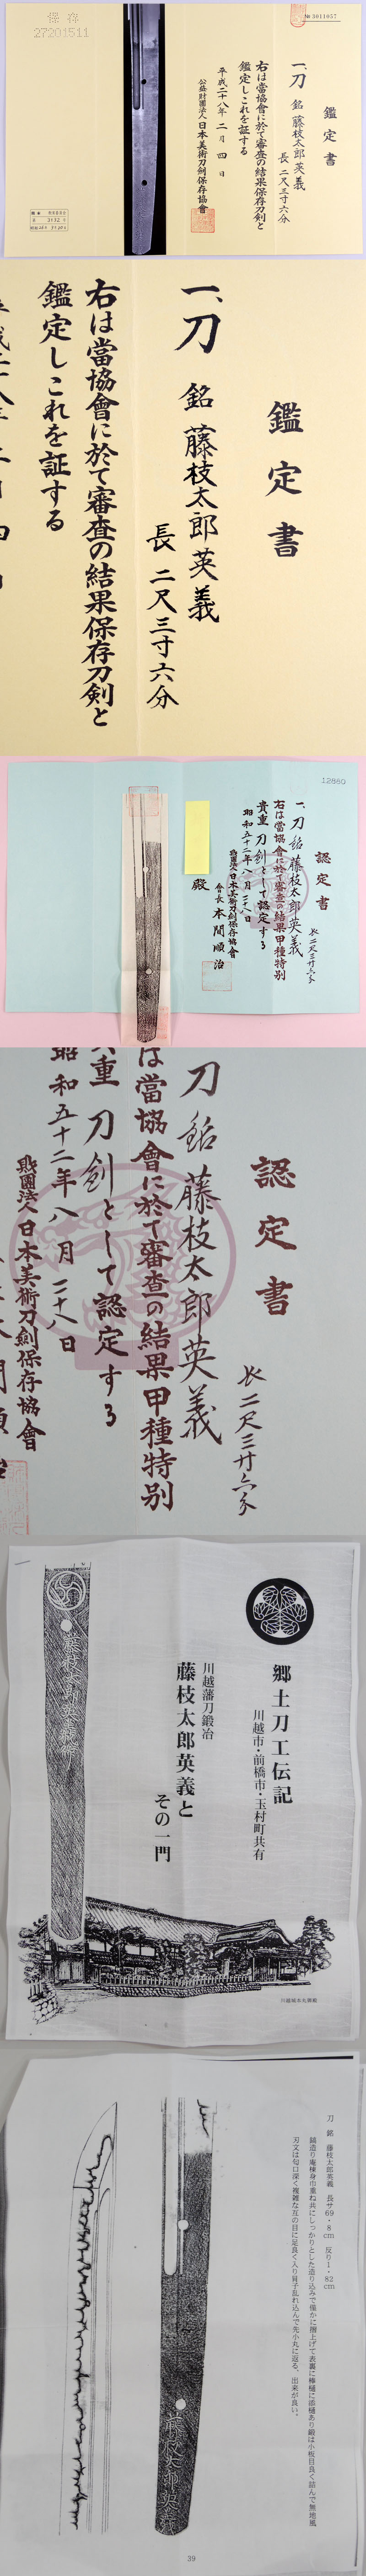 藤枝太郎英義 Picture of Certificate